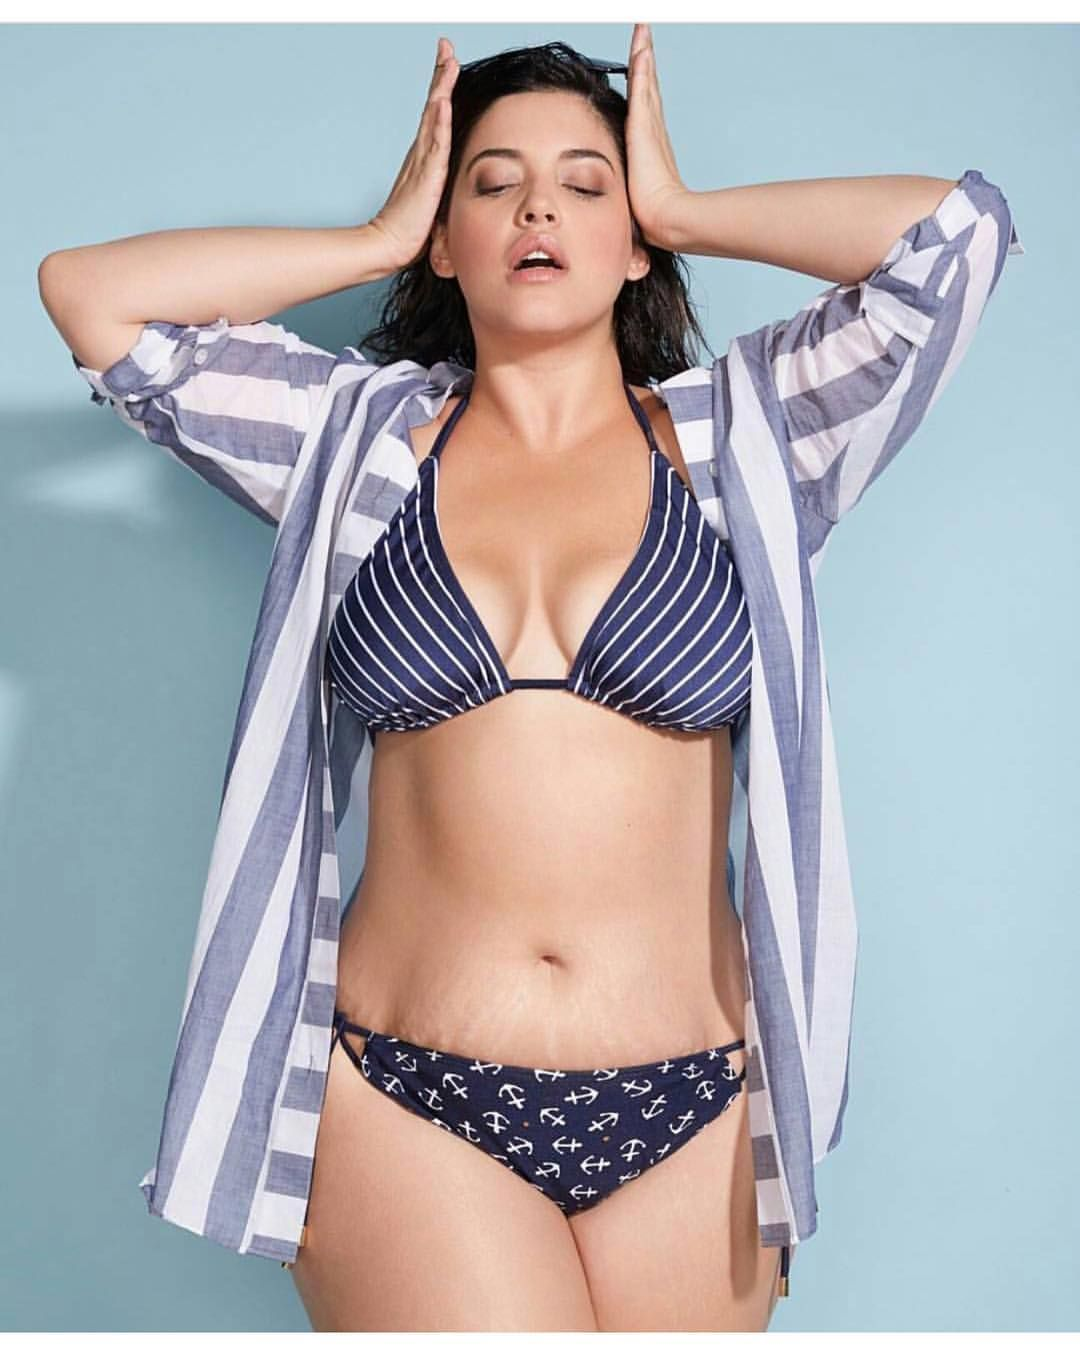 Curve Model Denise Bidot Proudly Shows Her Cellulite in